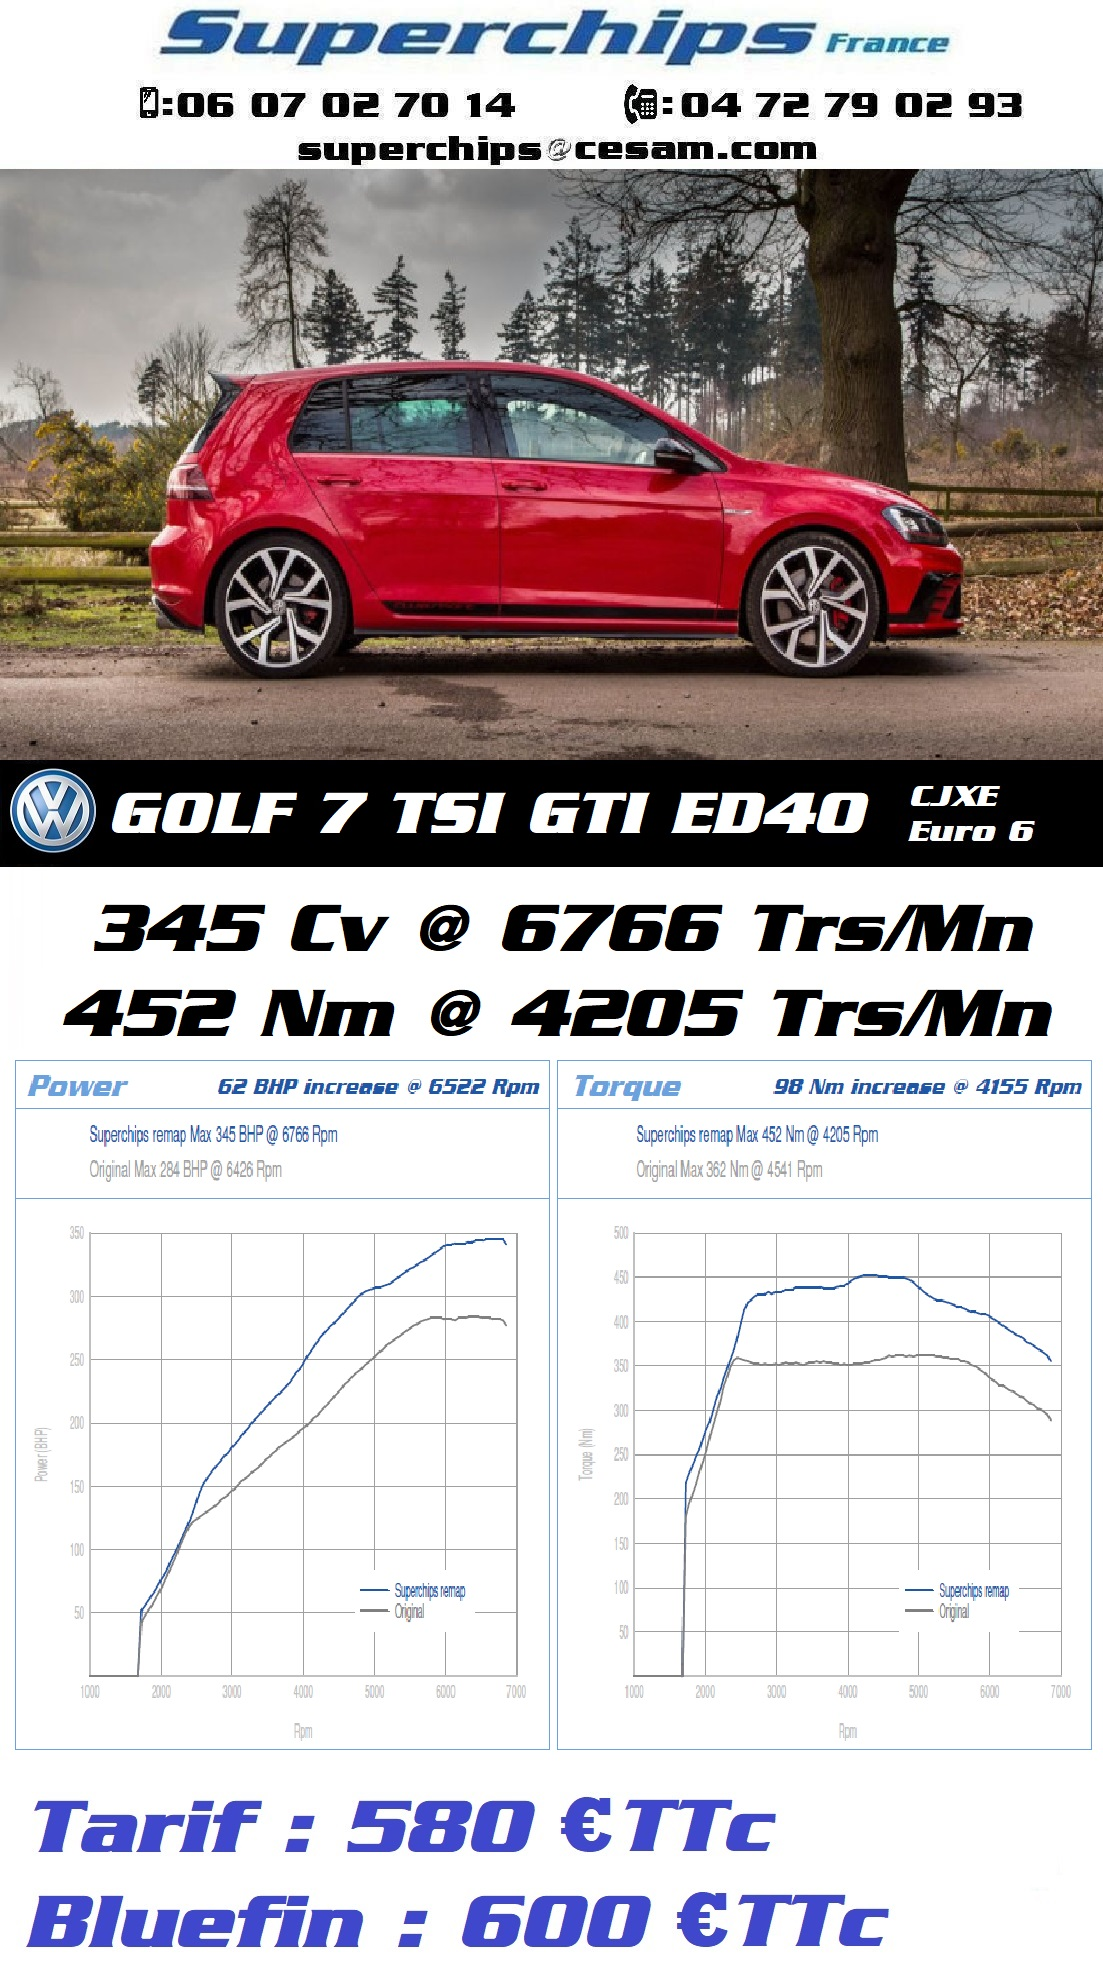 VW GOLF 7 GTI Edition 40